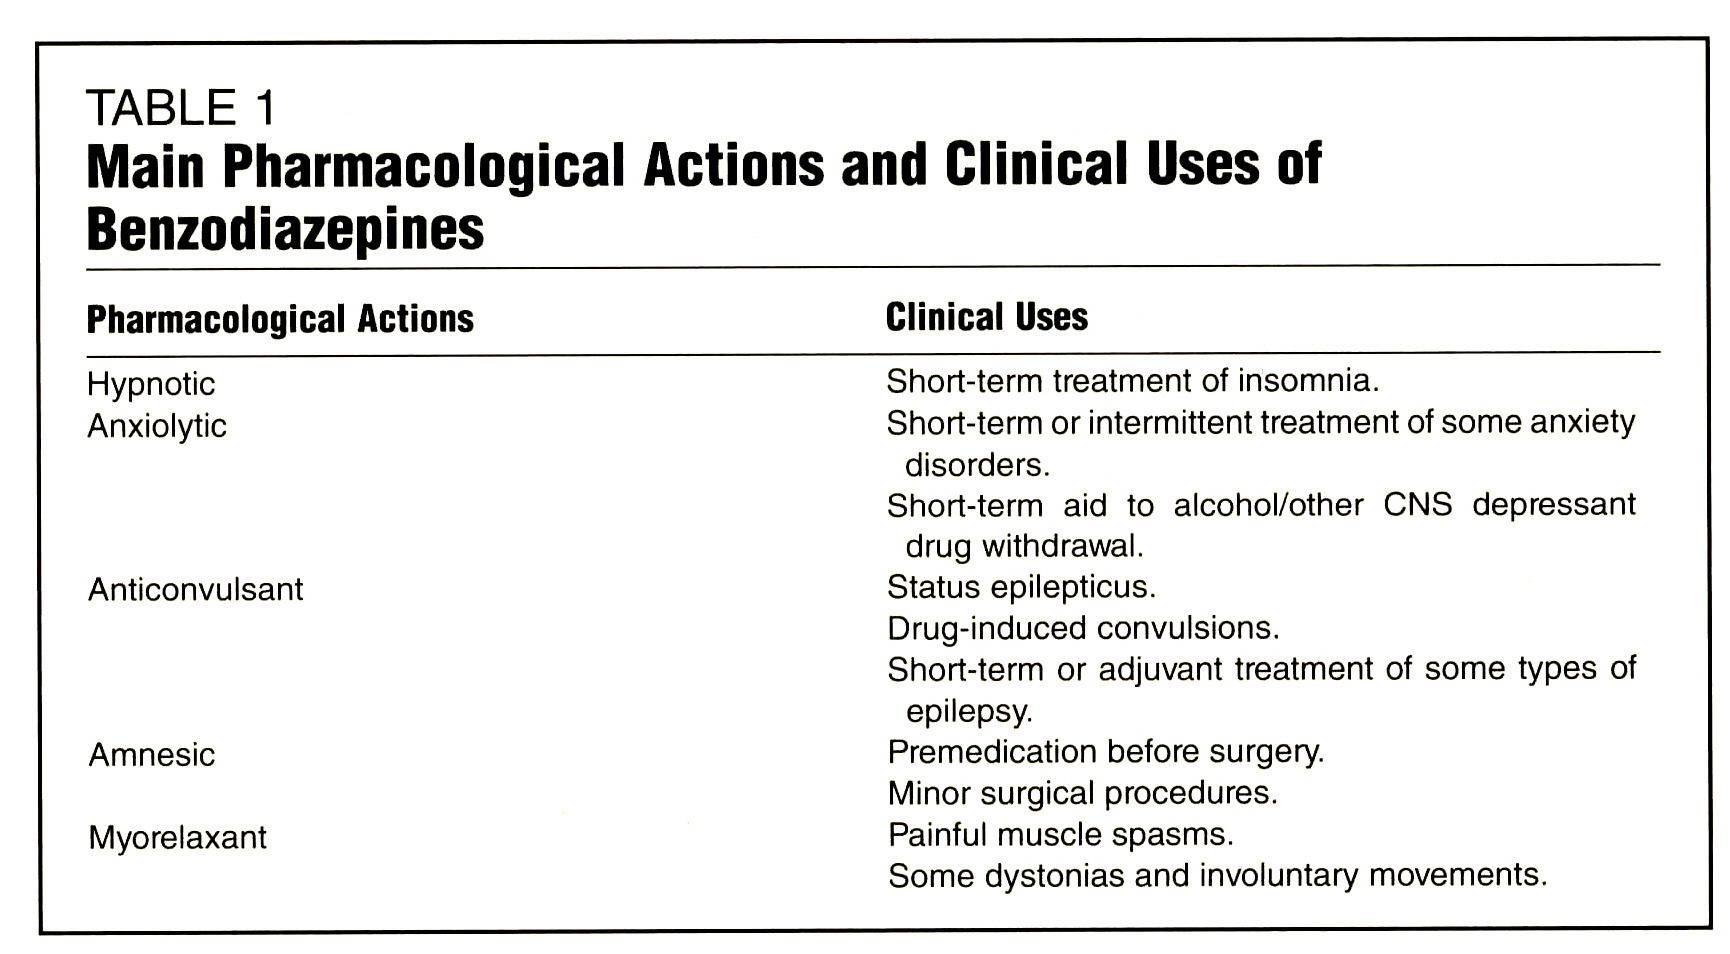 Toxicity and Adverse Consequences of Benzodiazepine Use